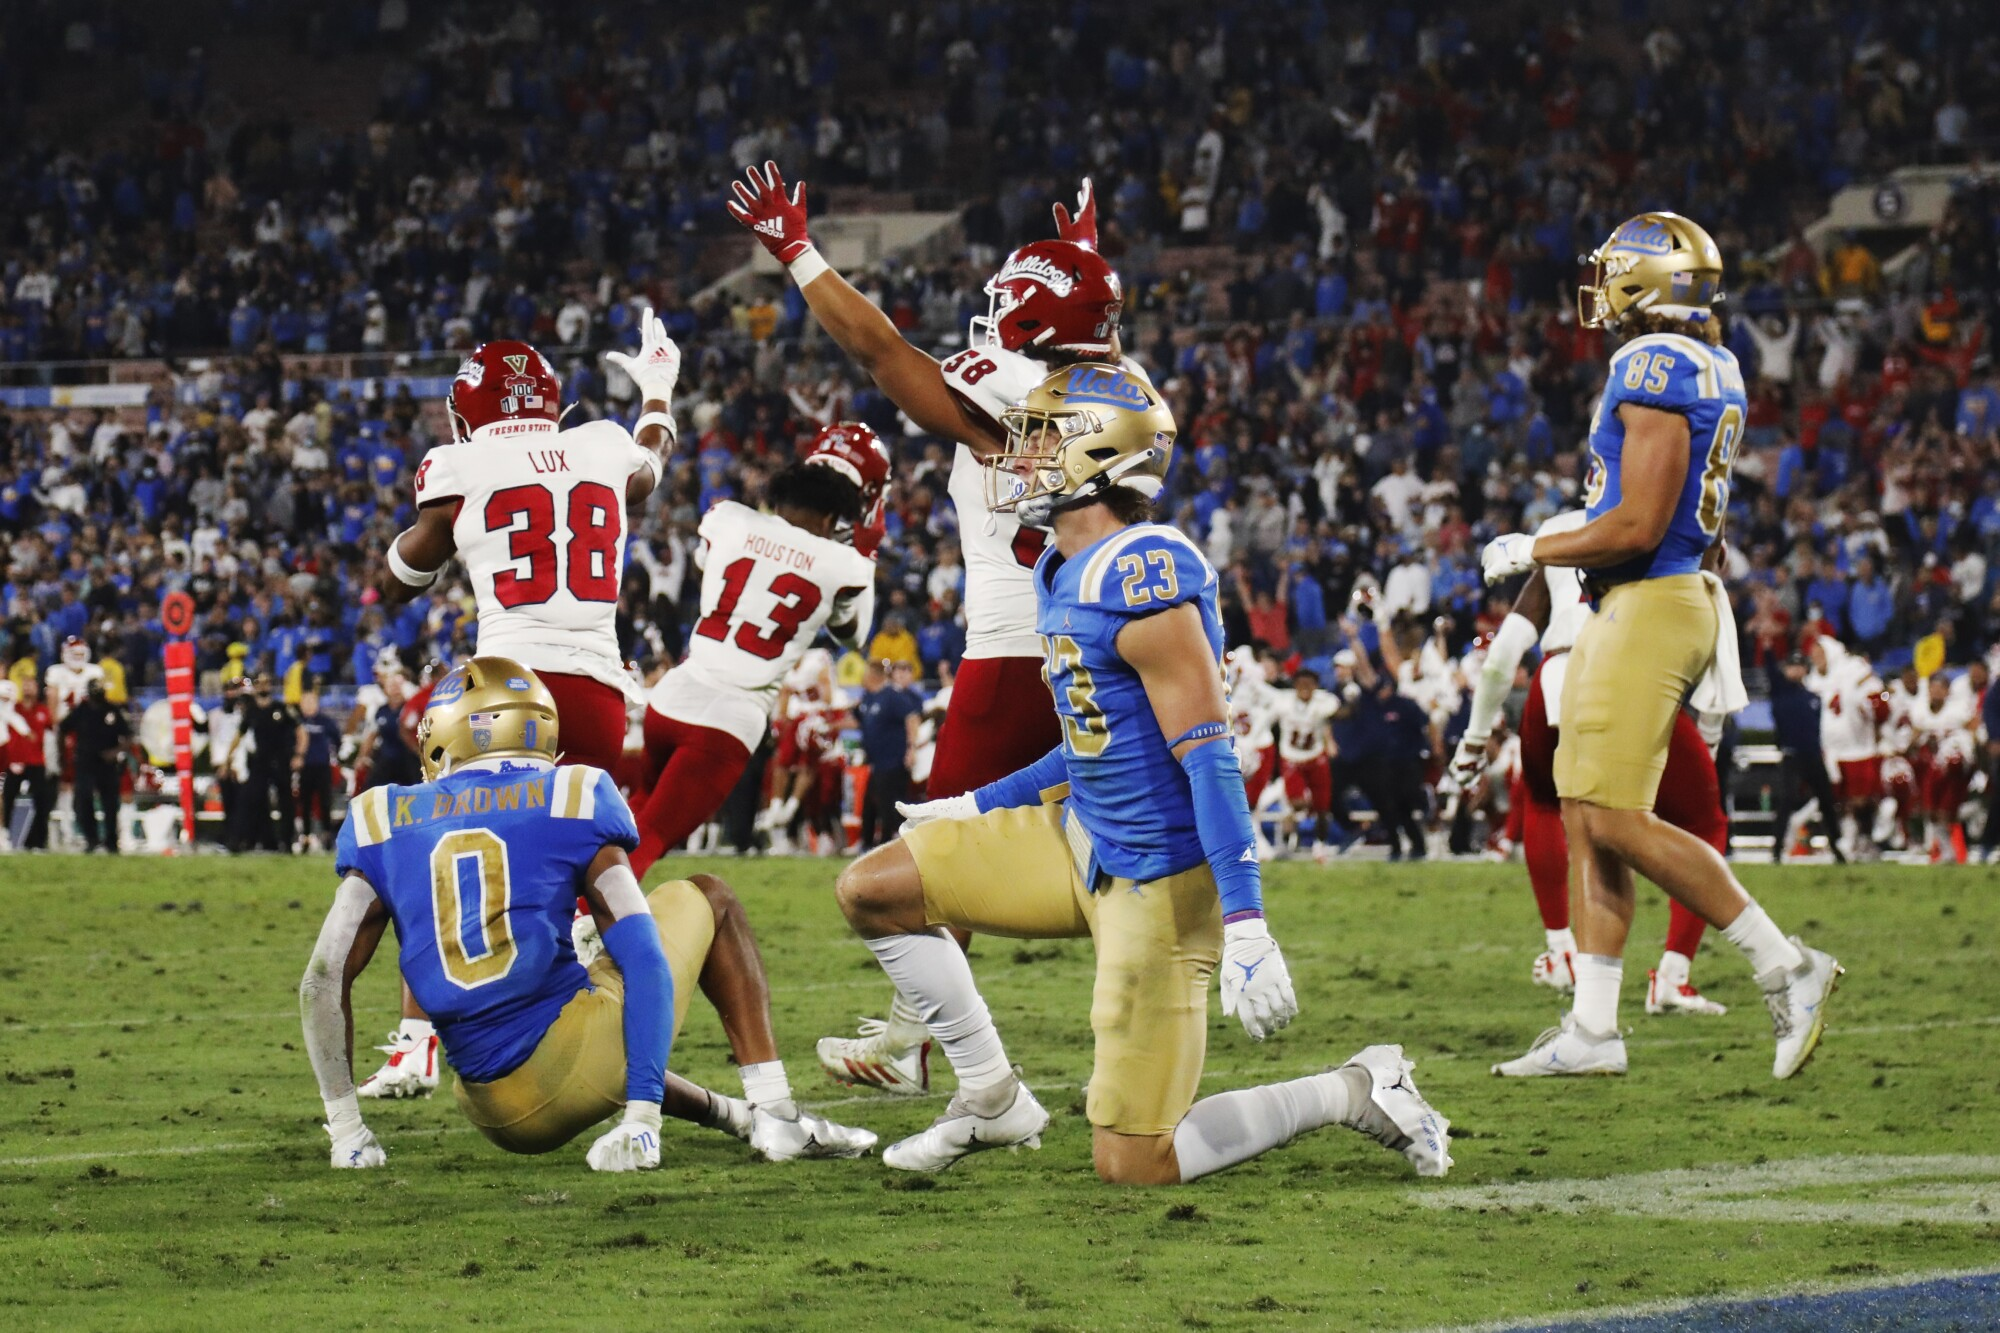 Photos: Fresno State upsets No. 13 UCLA at the Rose Bowl - Los Angeles Times